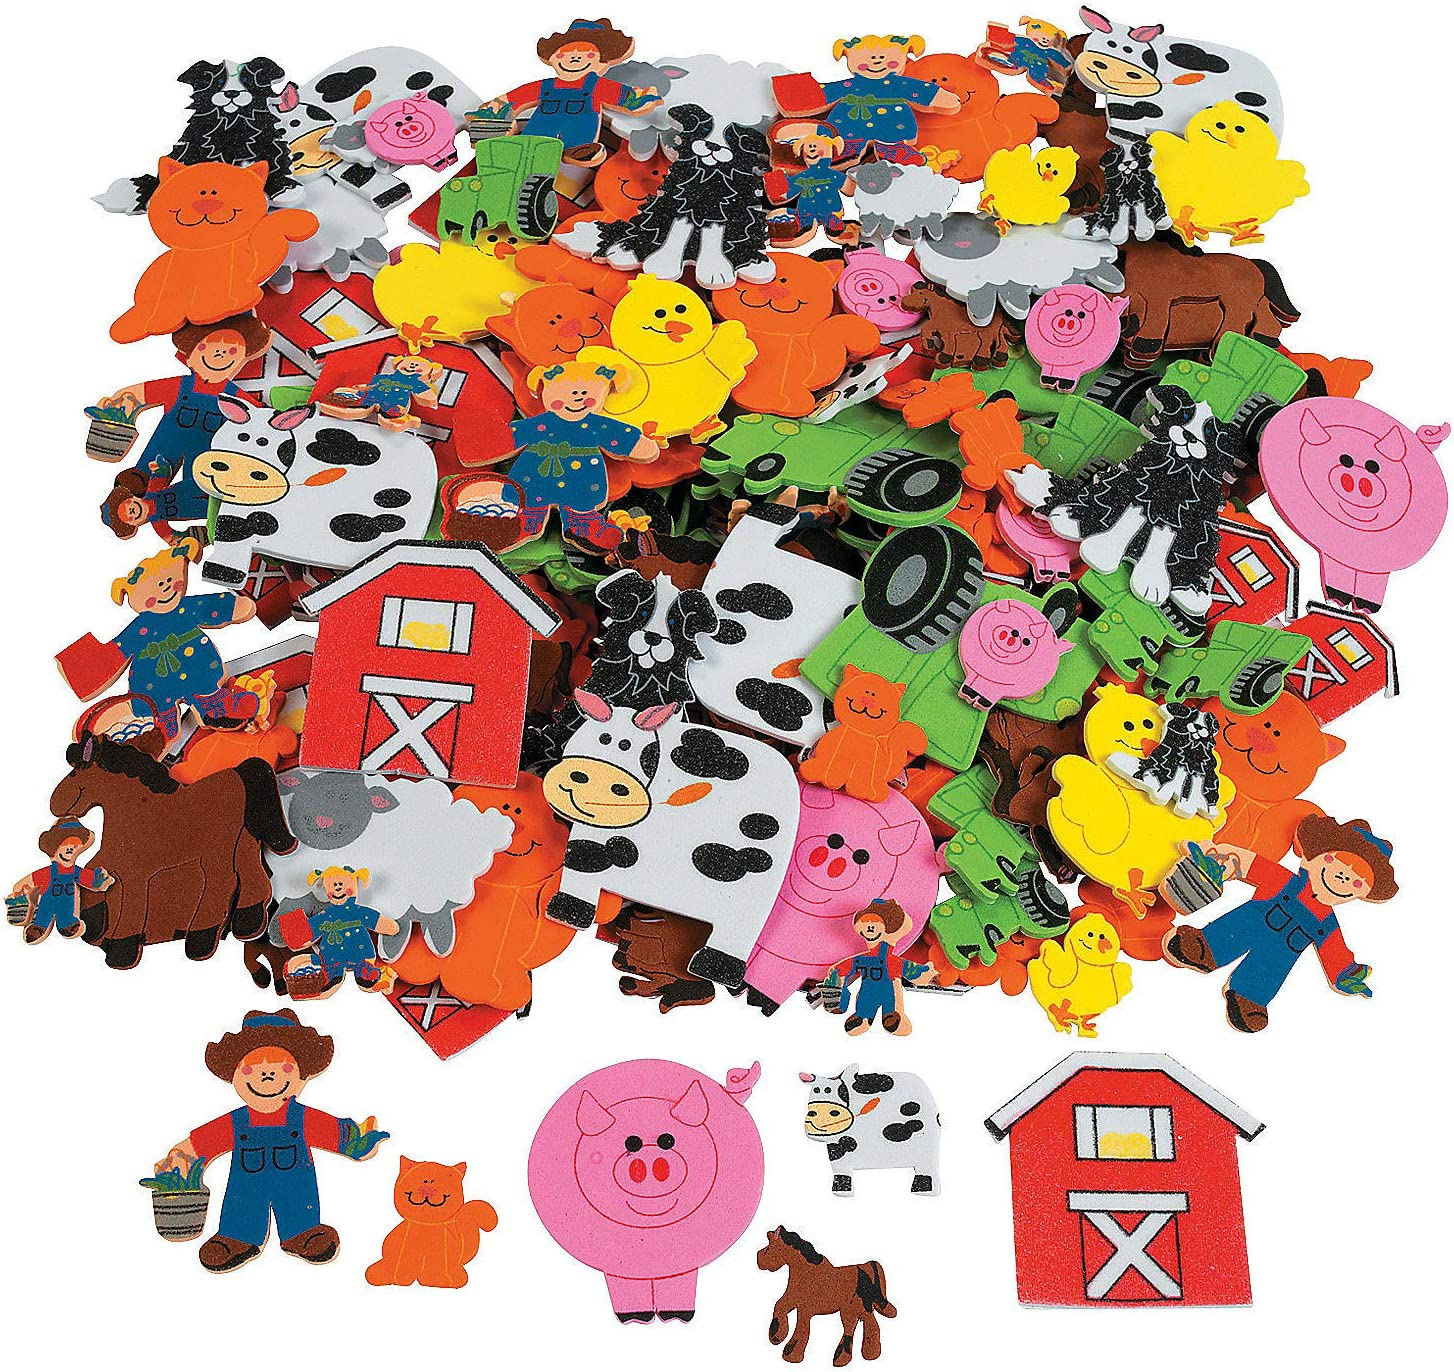 Fabulous Foam Adhesive Farm Shapes - Crafts for Kids and Fun Home Activities